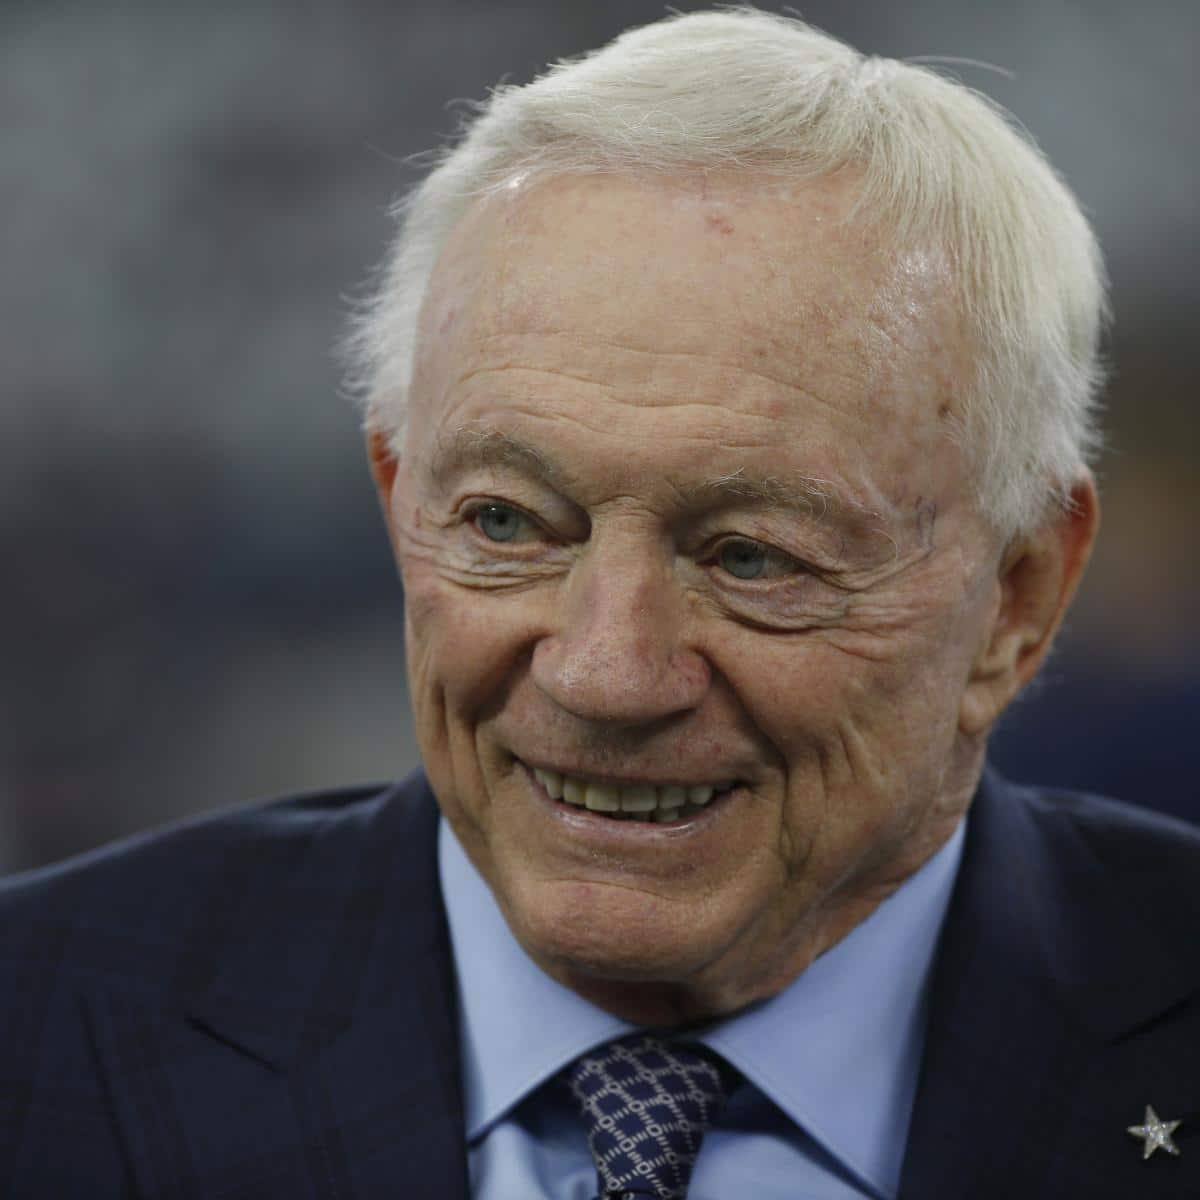 cowboys-jerry-jones-donating-20m-to-nationwide-medal-of-honor-museum-in-texas.jpg